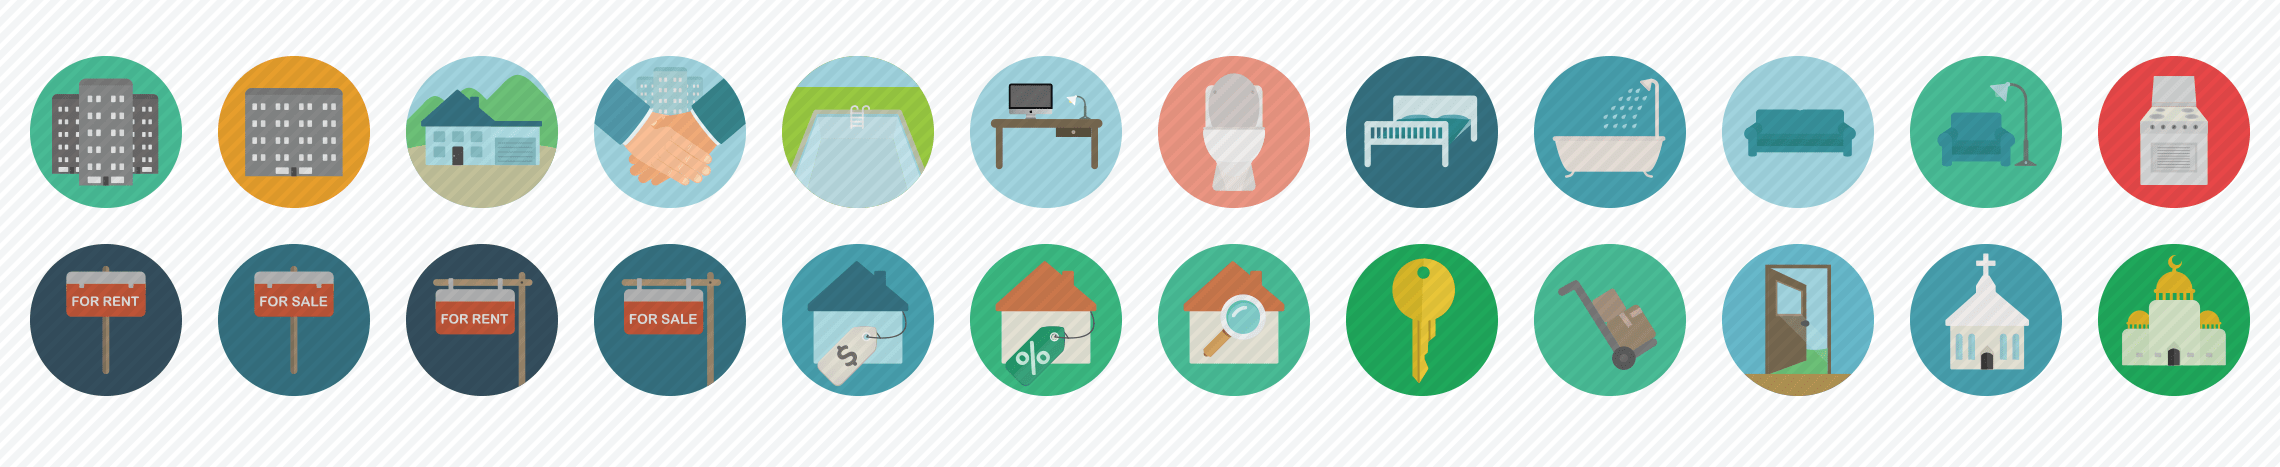 real-estate-flat-icons-set